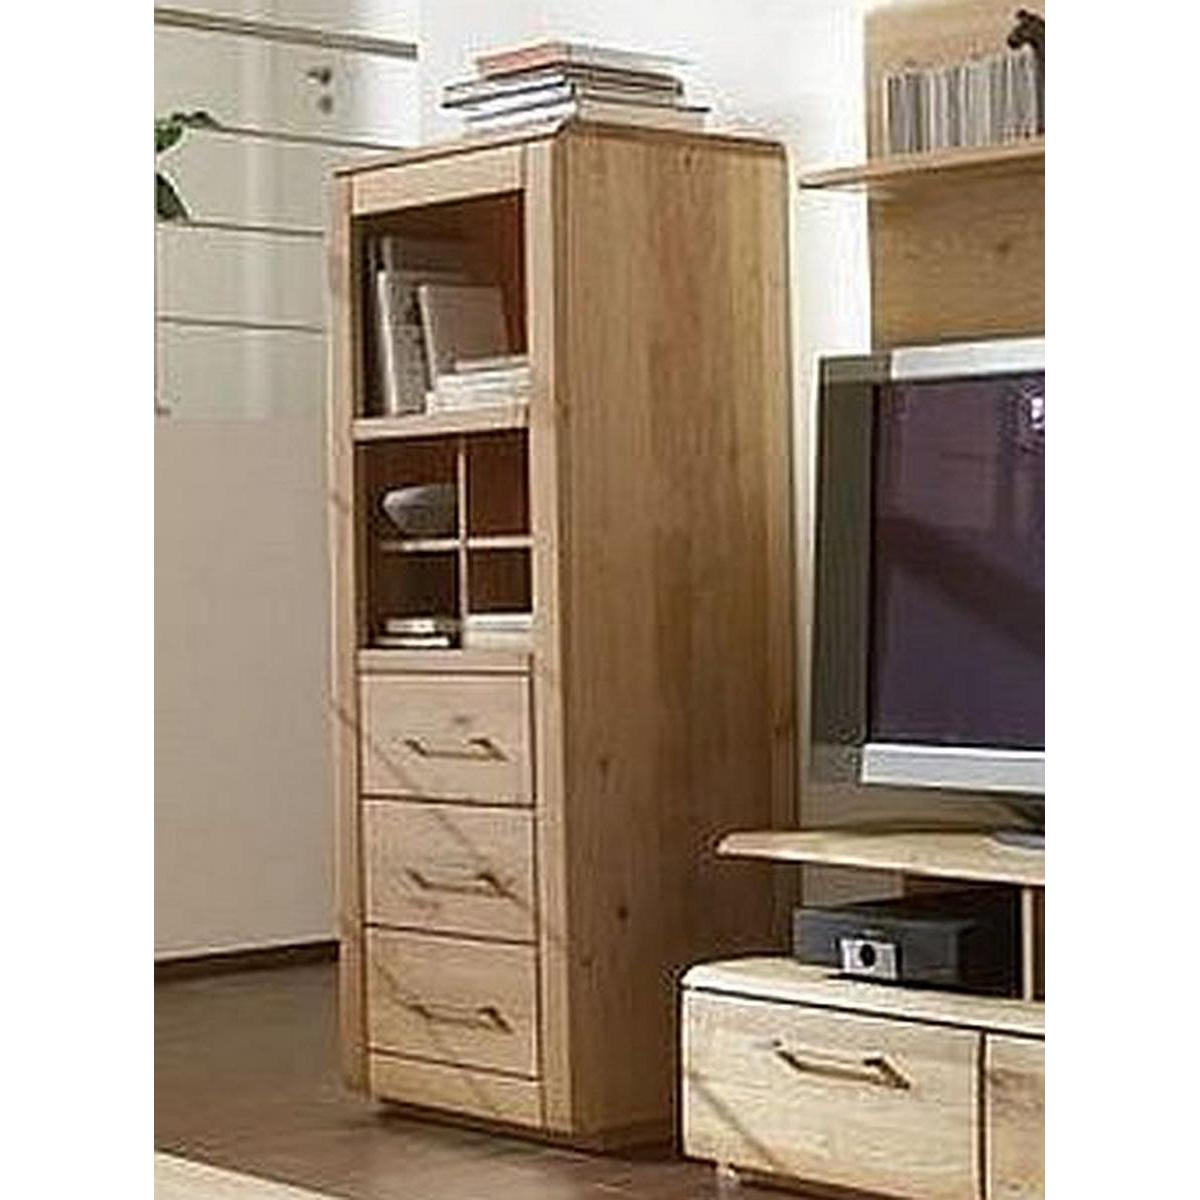 massivholz standregal mit einsatz oxford wildeiche massiv. Black Bedroom Furniture Sets. Home Design Ideas